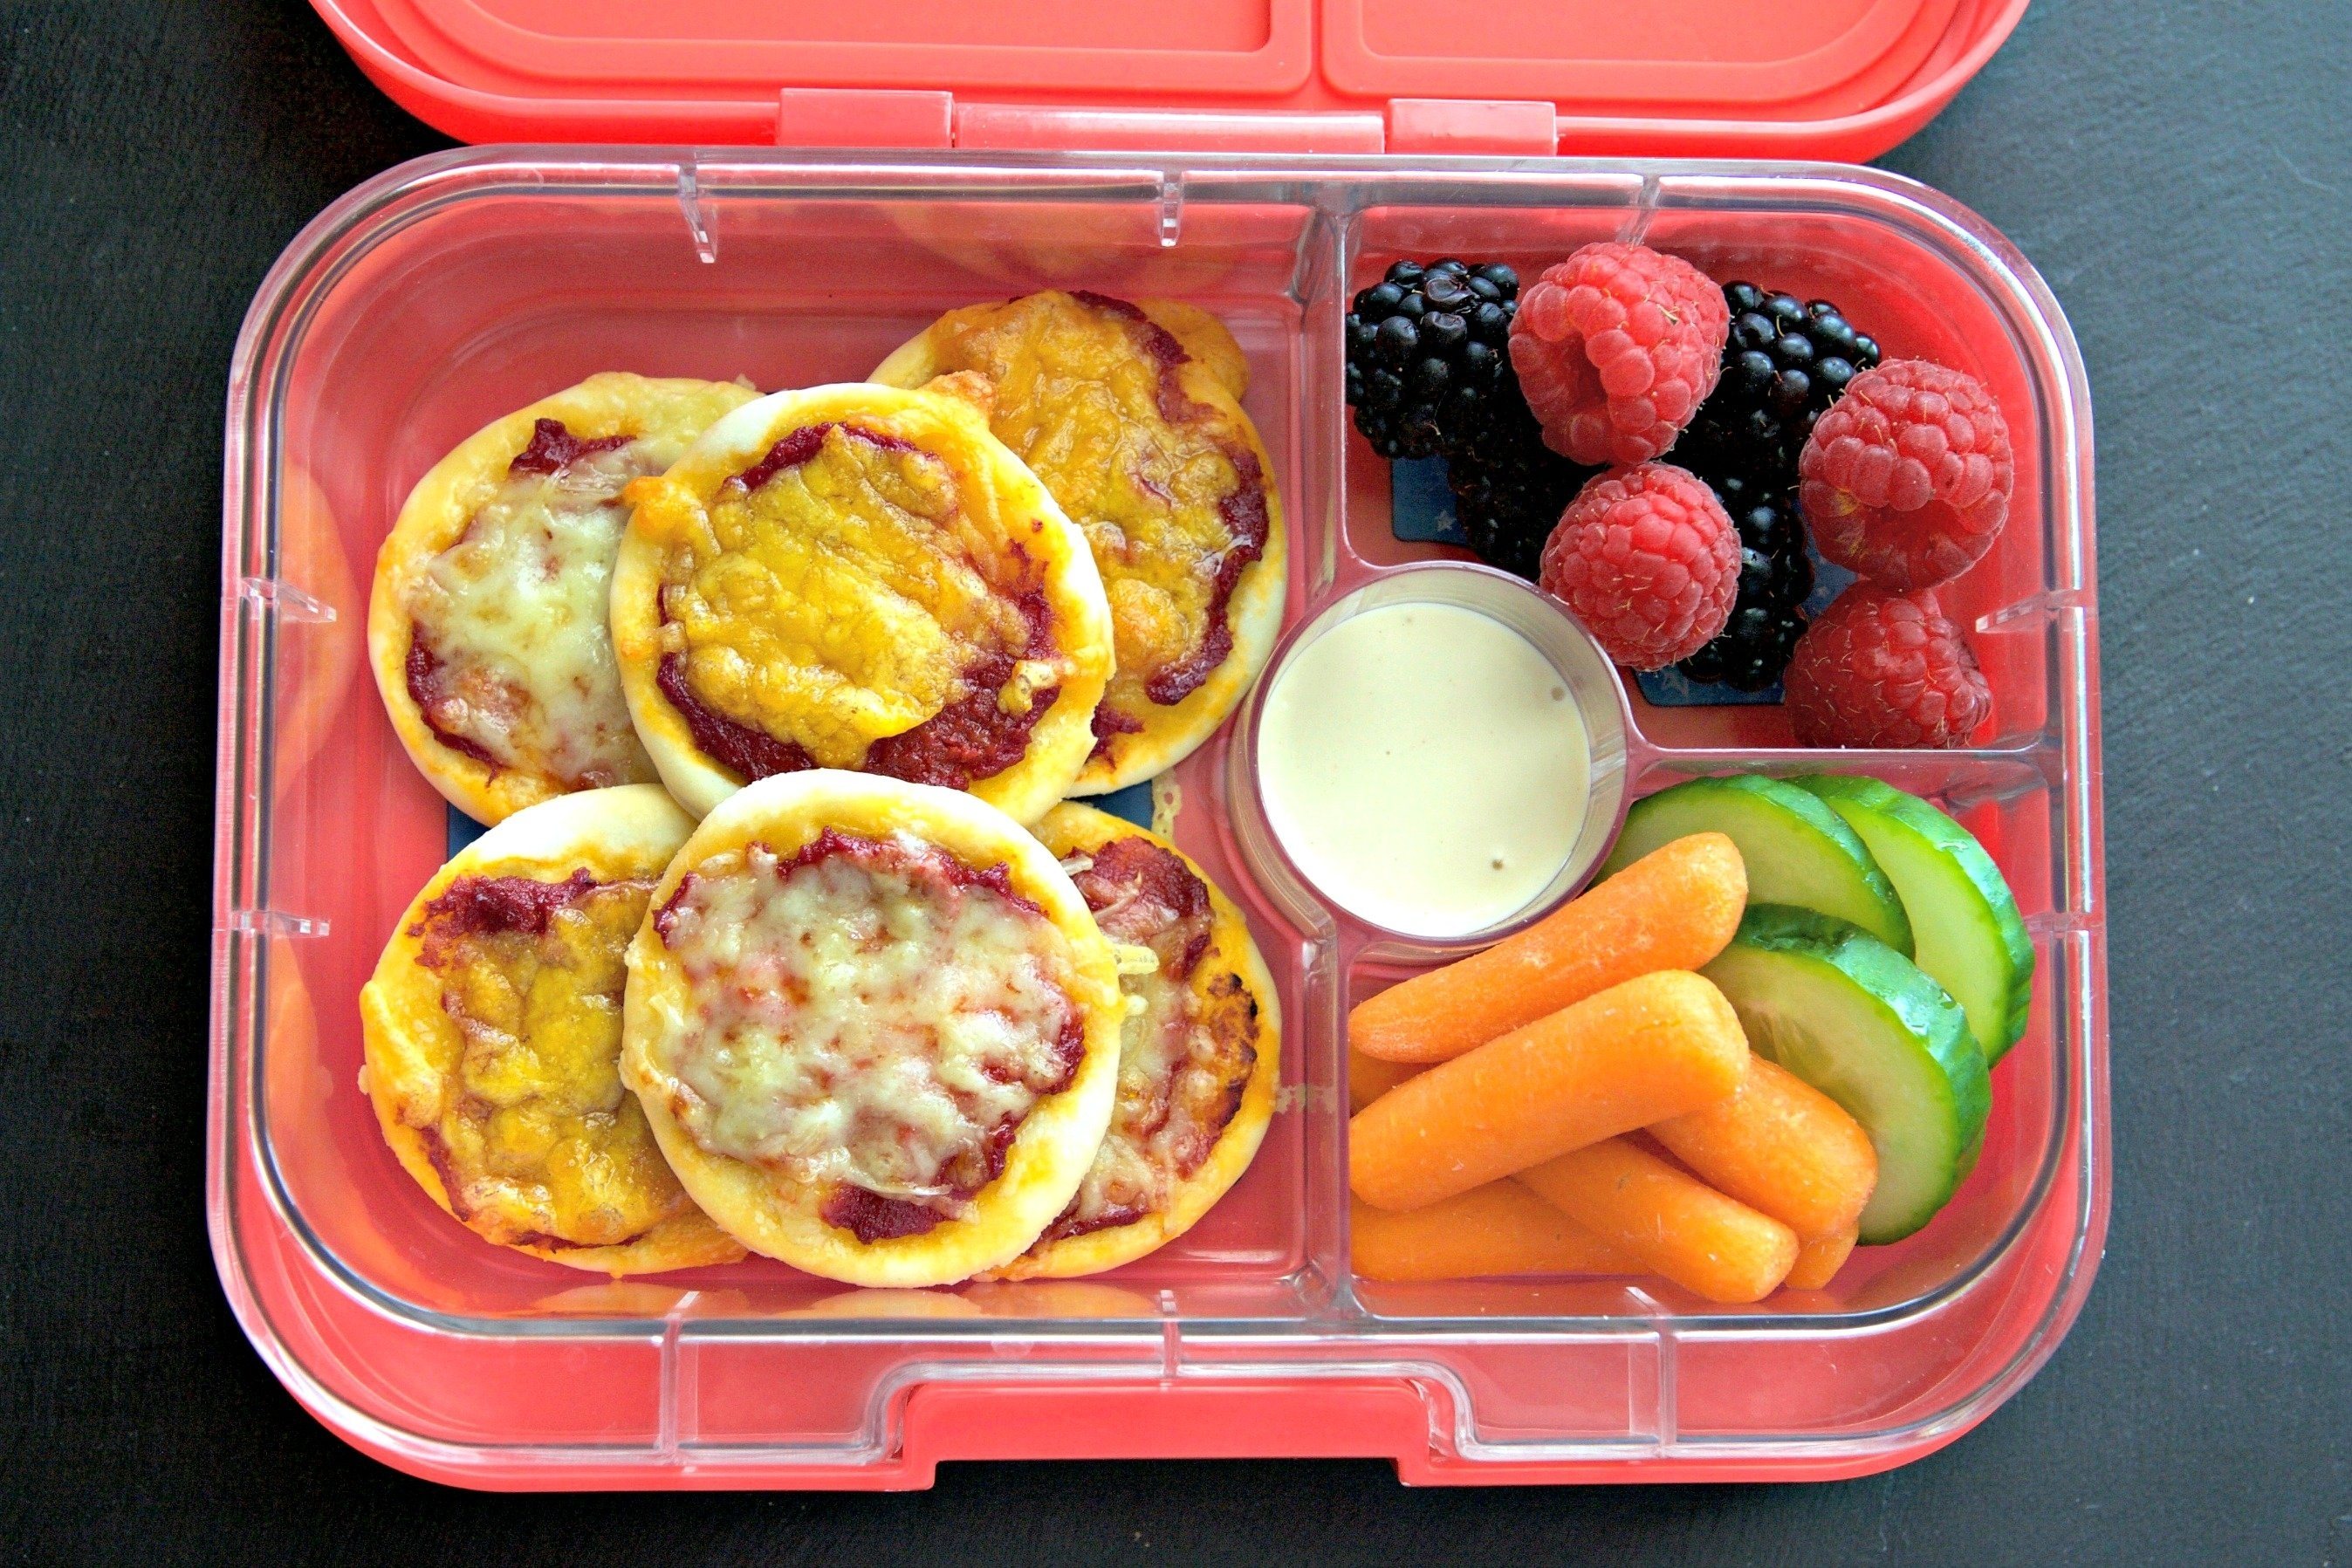 10 Fashionable Lunch Ideas For Picky Kids mini pizza recipe the perfect picky eater meal yumbox 10